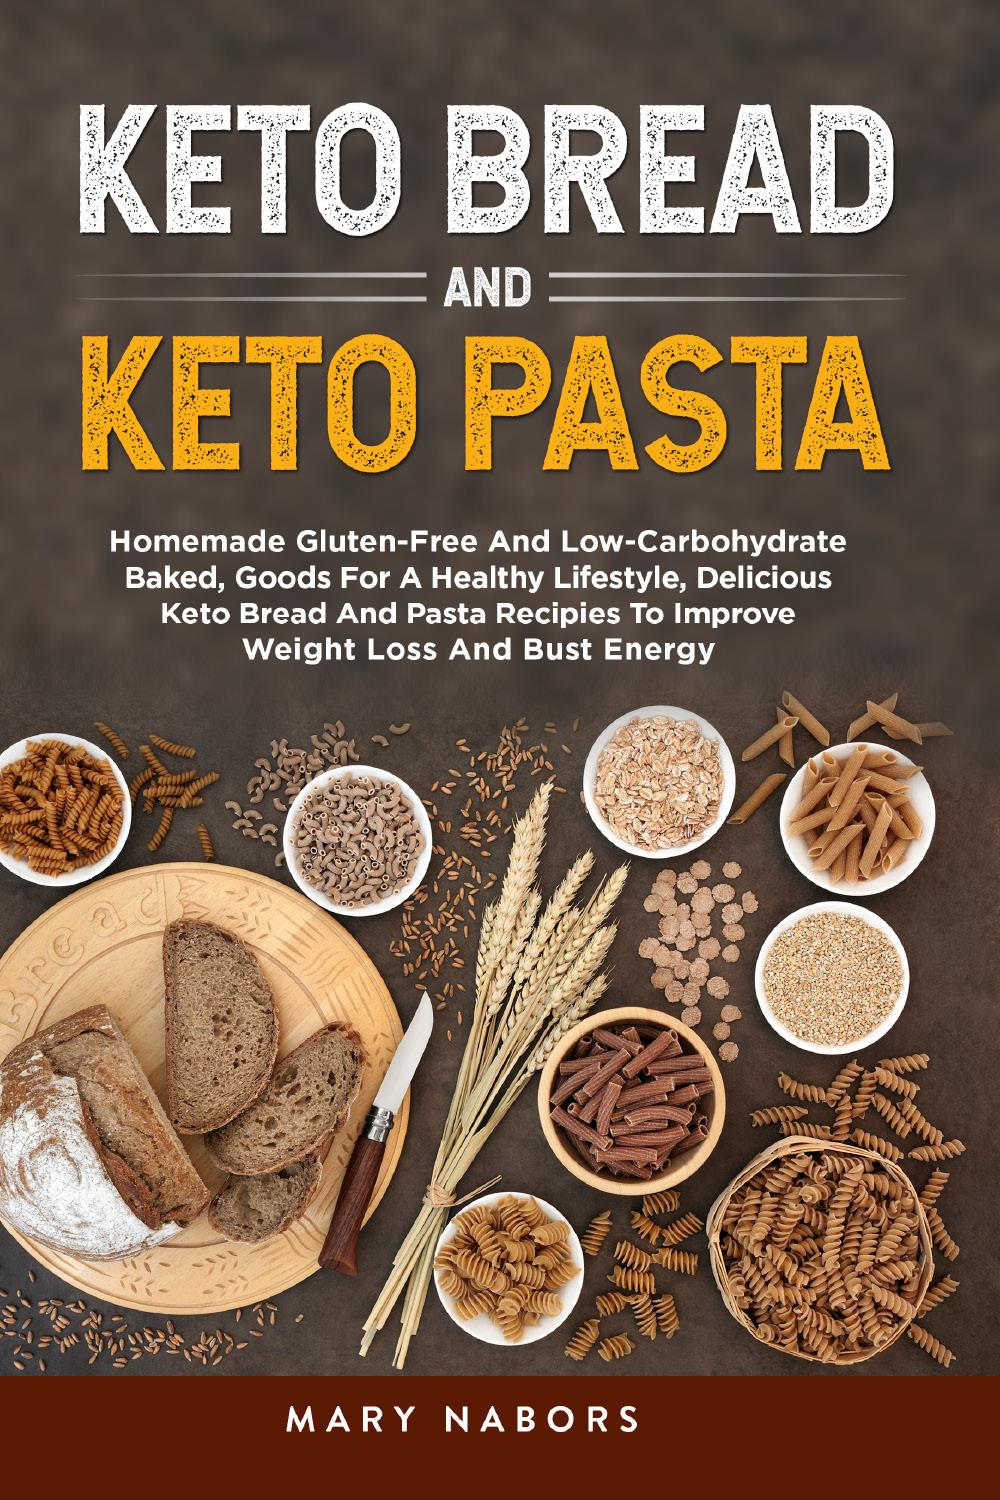 Keto bread and keto pasta. Homemade Gluten-Free And Low-Carbohydrate Baked, Goods For A Healthy Lifestyle, Delicious Keto Bread And Pasta Recipies To Improve Weight Loss And Bust Energy